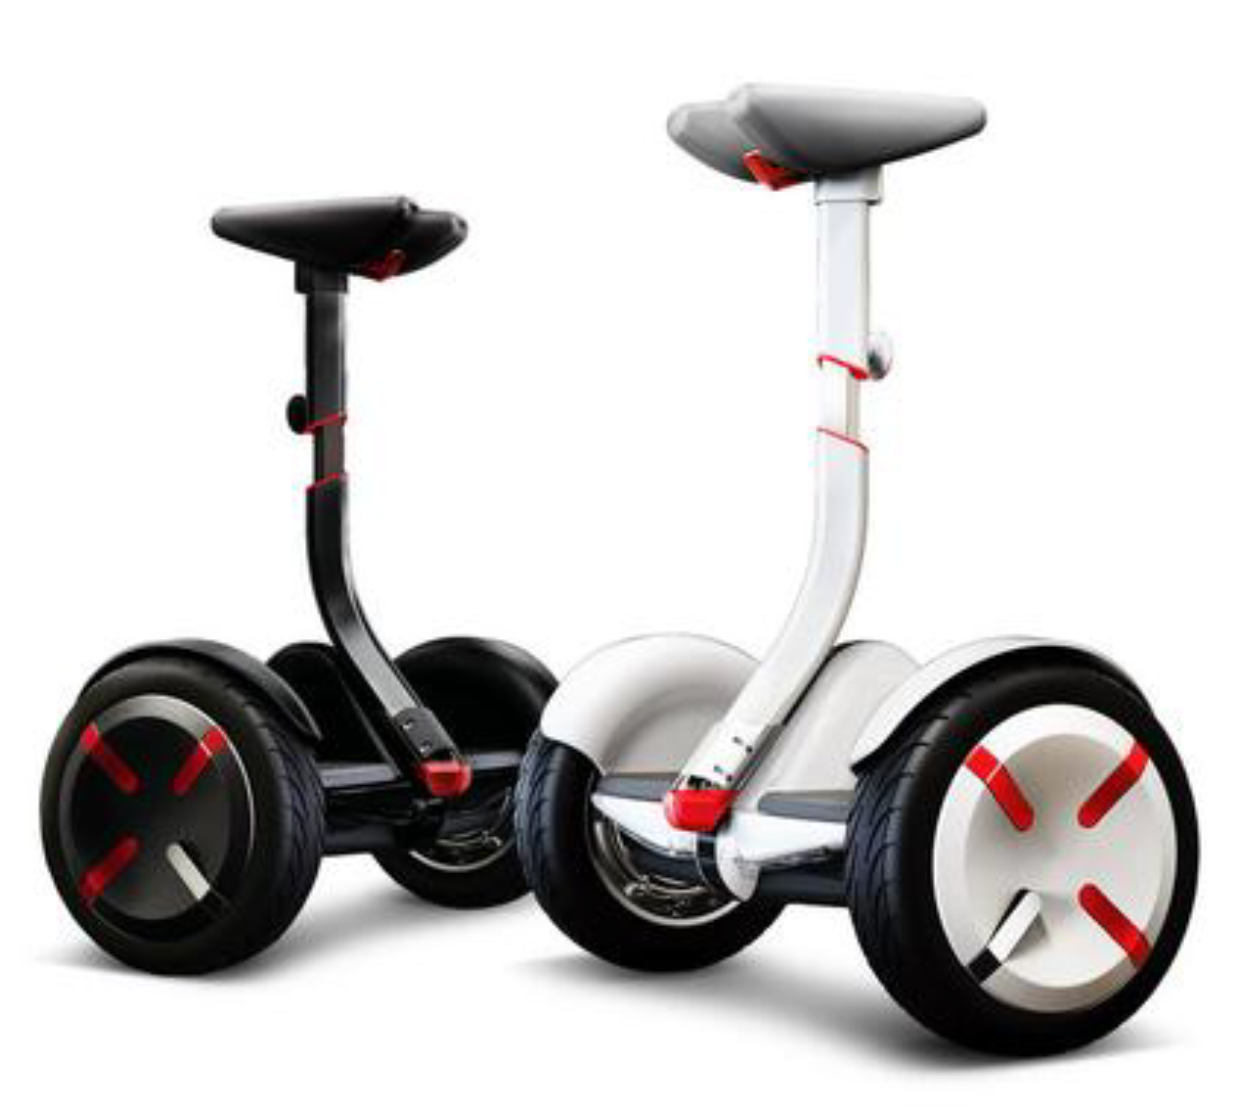 segway mini pro electric scooters. Black Bedroom Furniture Sets. Home Design Ideas